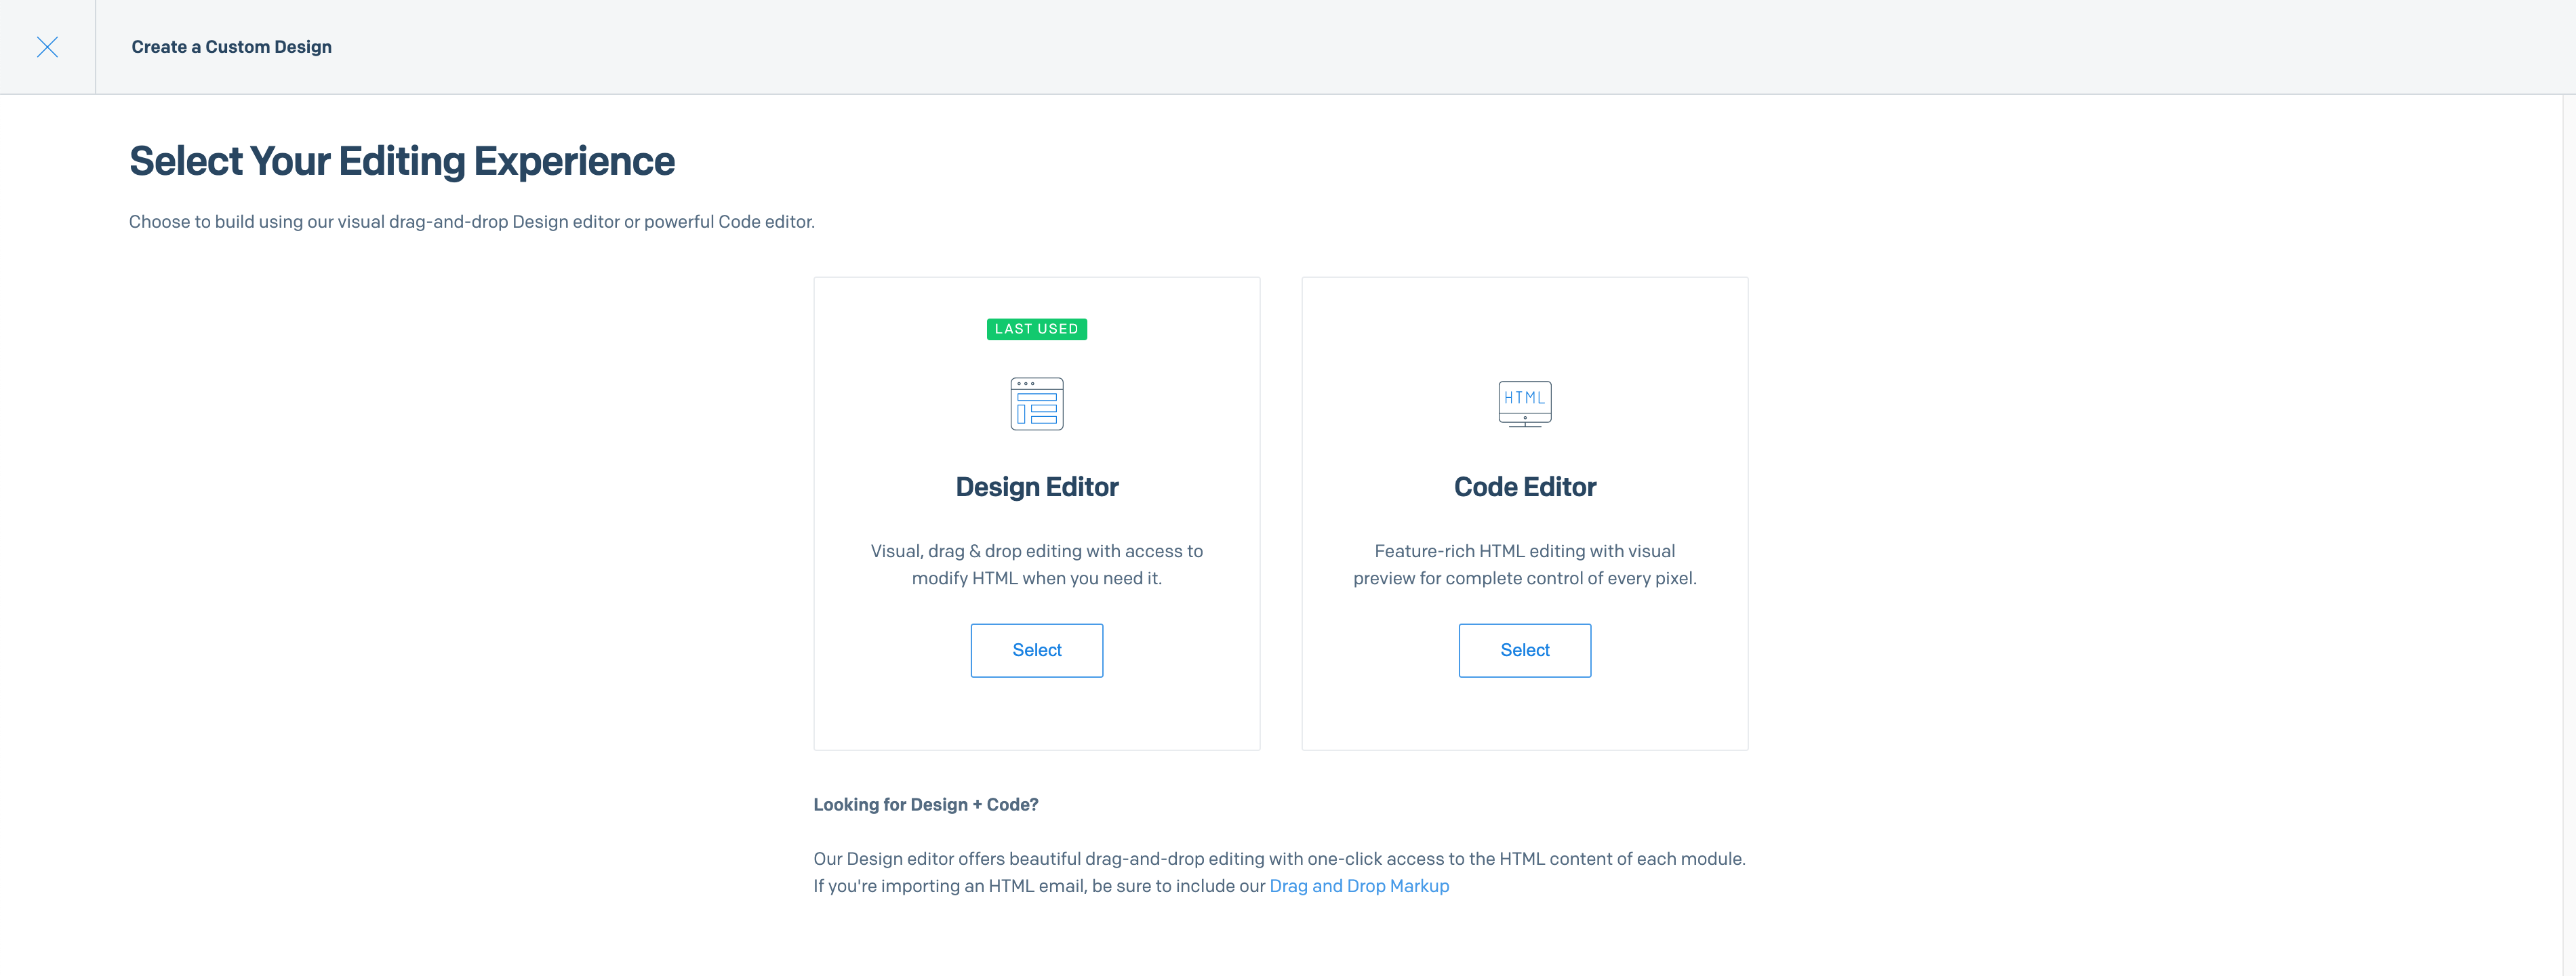 A window with two large boxes displaying your choice of editor, the Design Editor or Code Editor